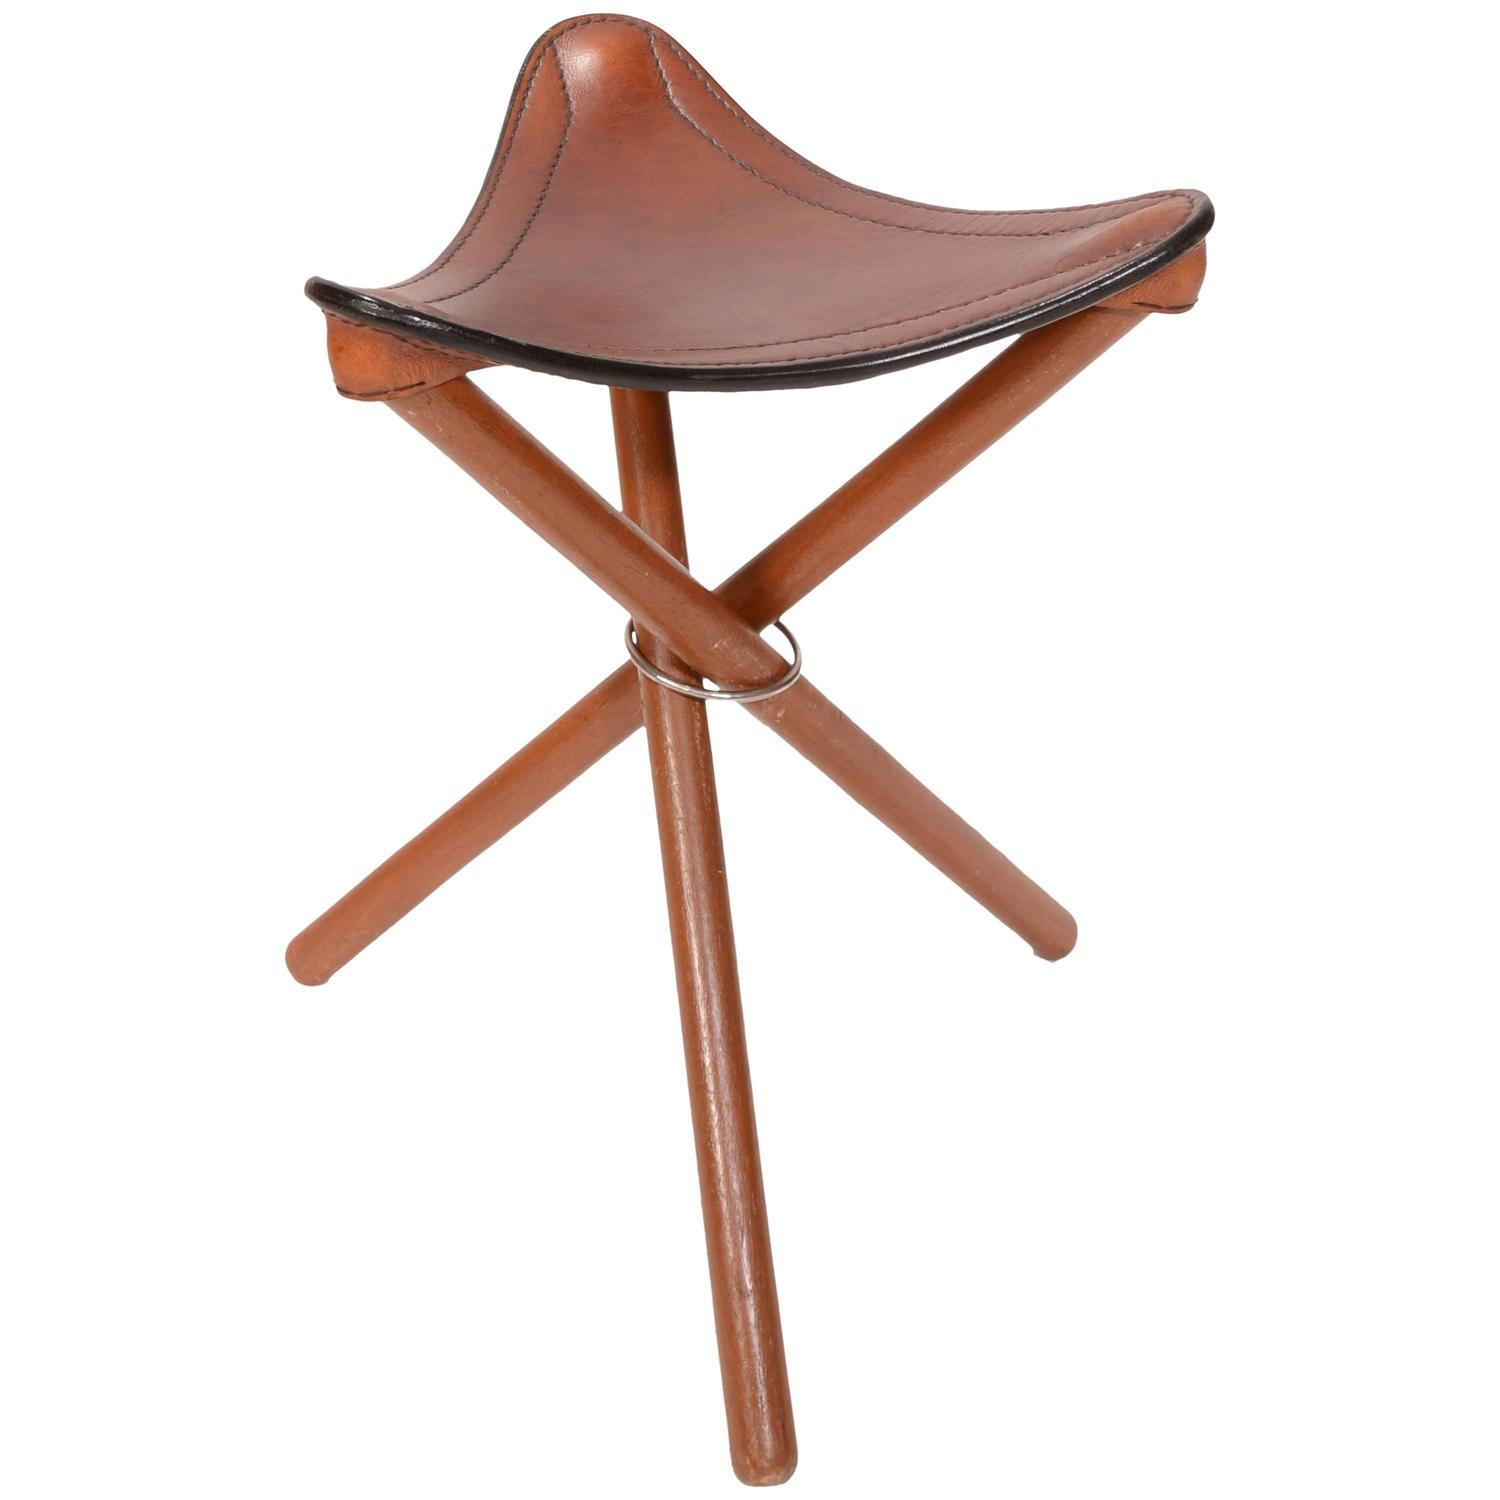 Danish Teak And Leather Folding Tripod Safari Stool For